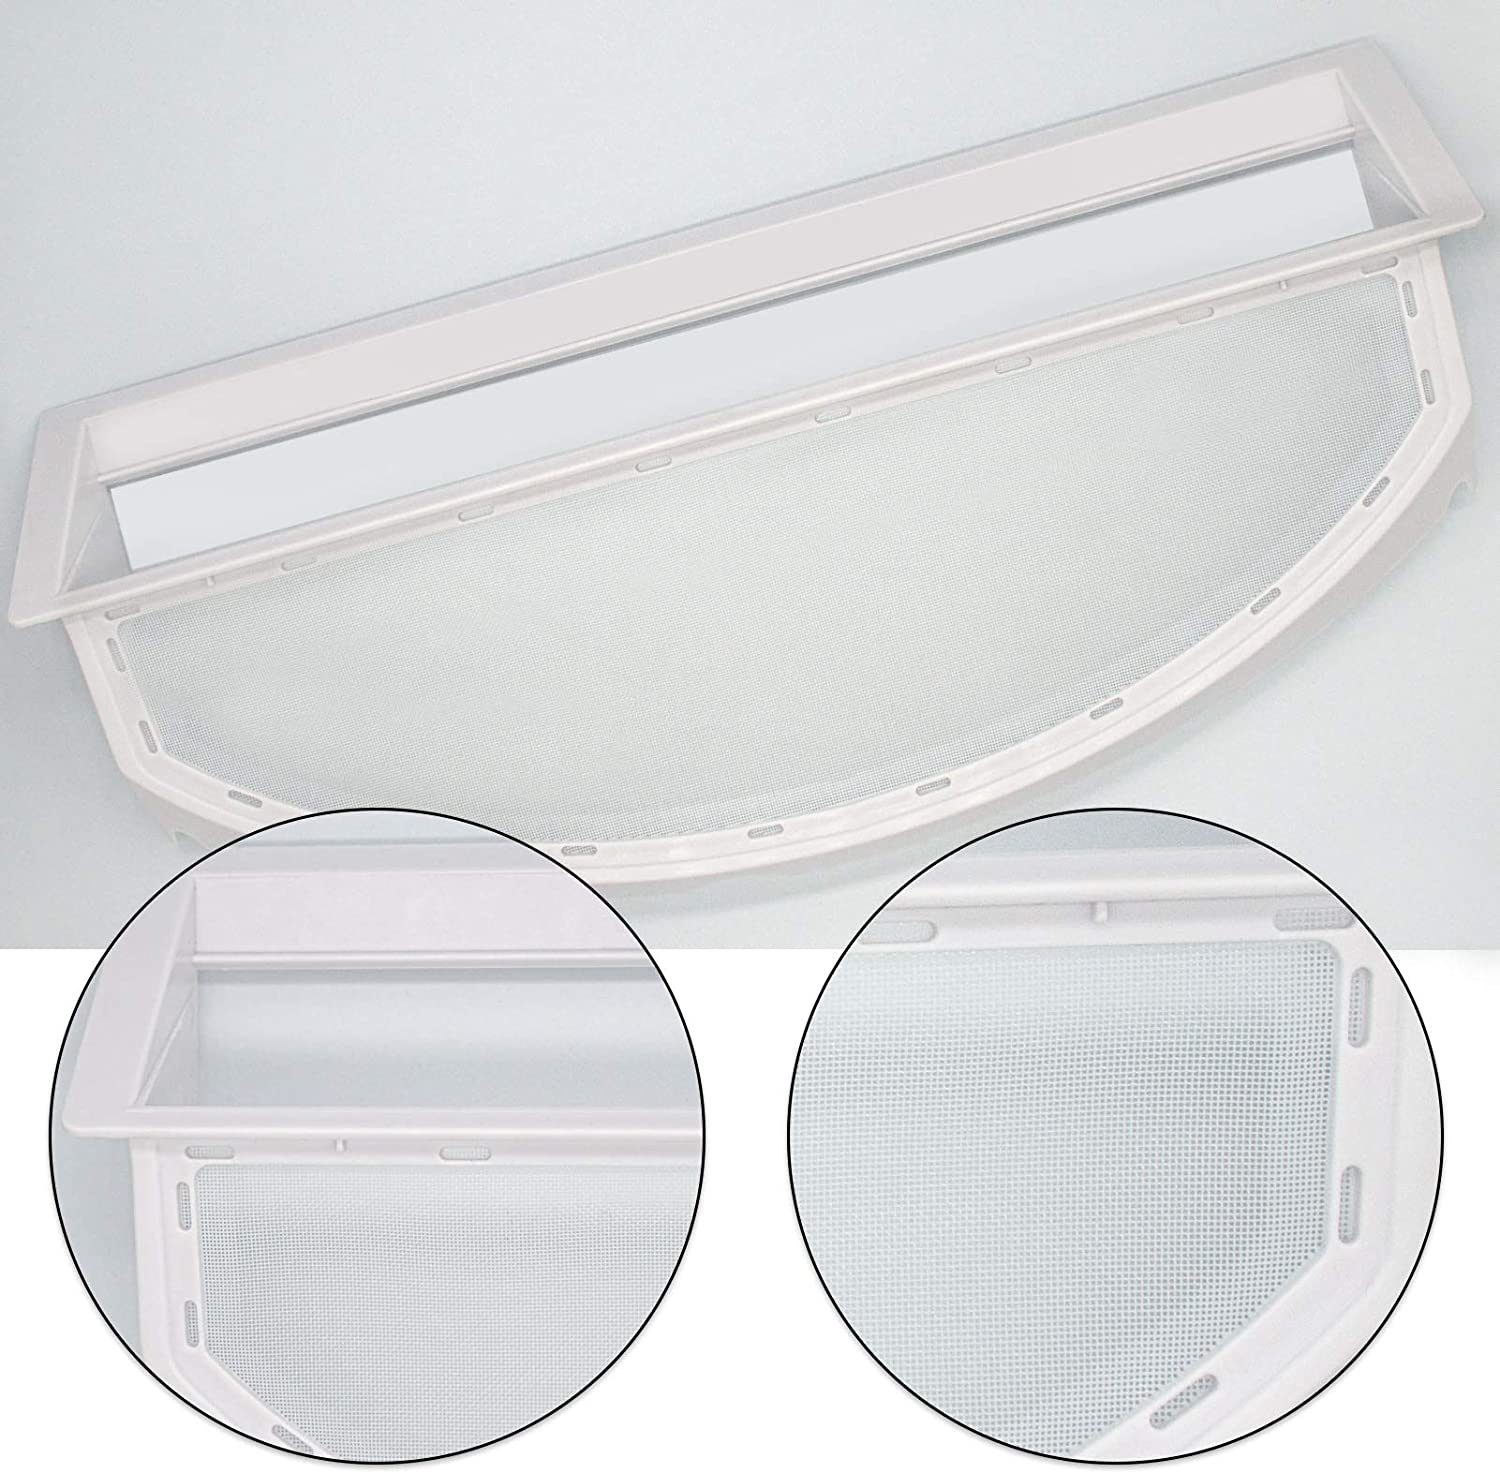 WE18X25100 Dryer Lint Screen Filter Assembly Compatible with ge hotpoint RAC Dryer Replaces WE18M28 WE18M25 WE18M19 WE18M30 AP6037511 PS11767017